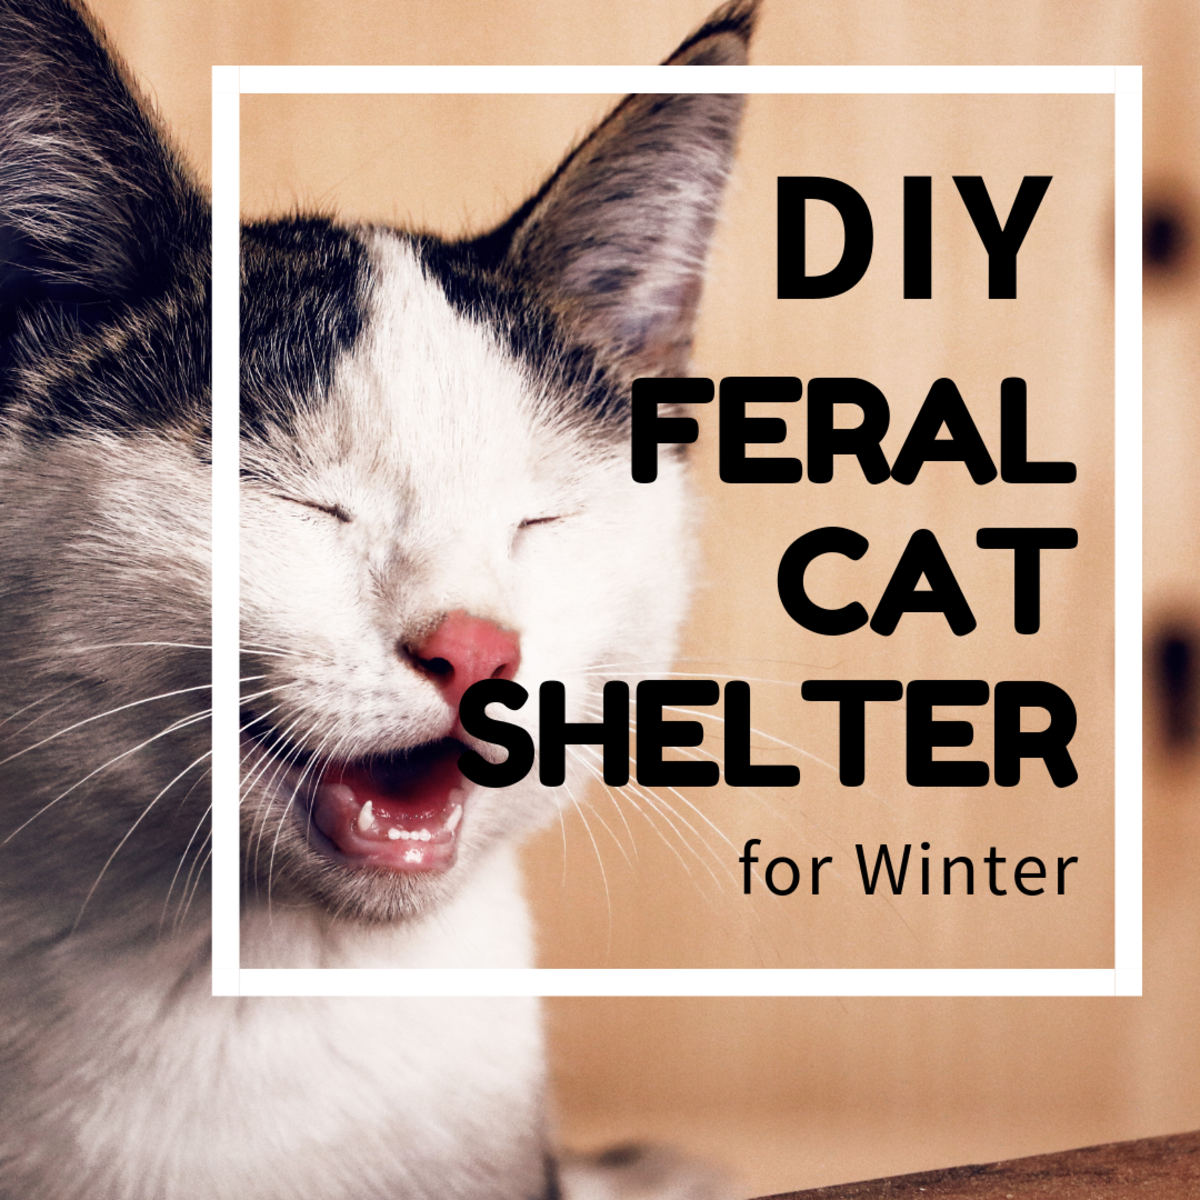 A DIY feral cat shelter project.